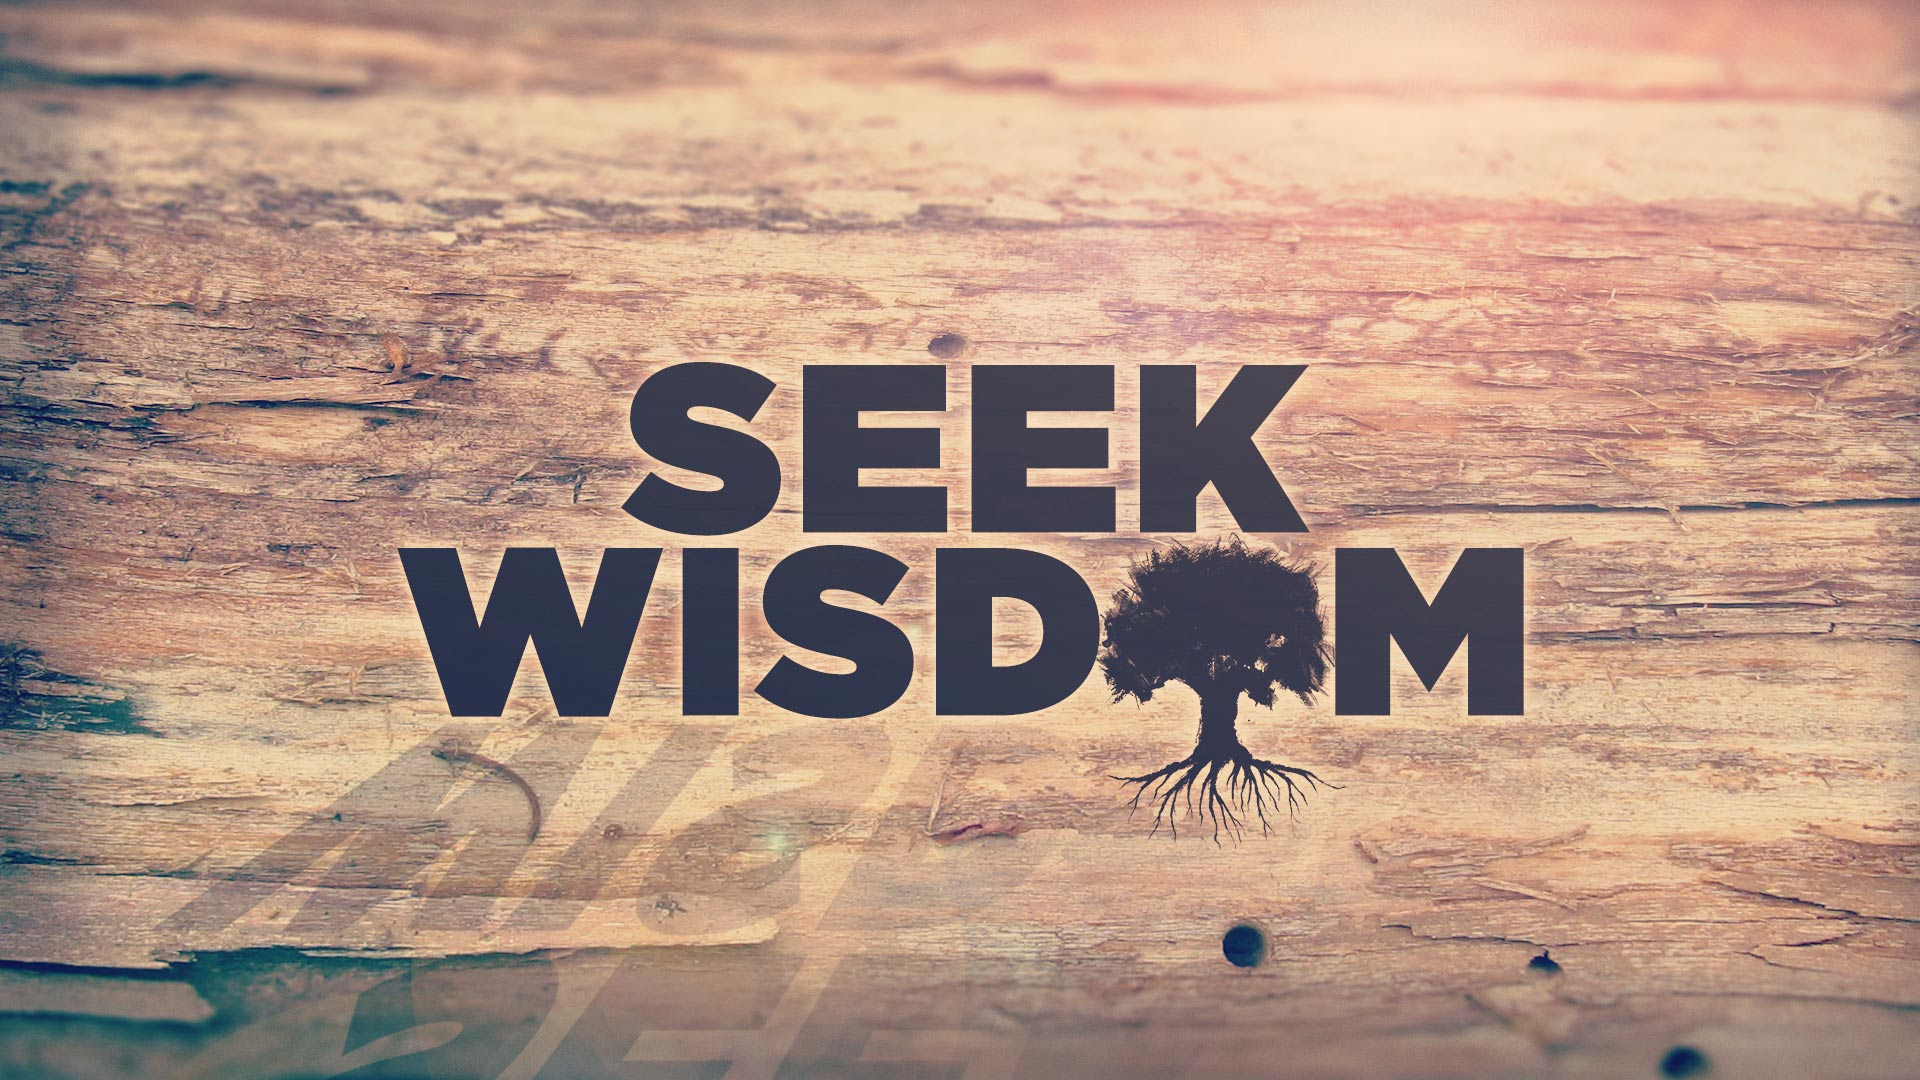 Amazing Wisdom Pictures & Backgrounds